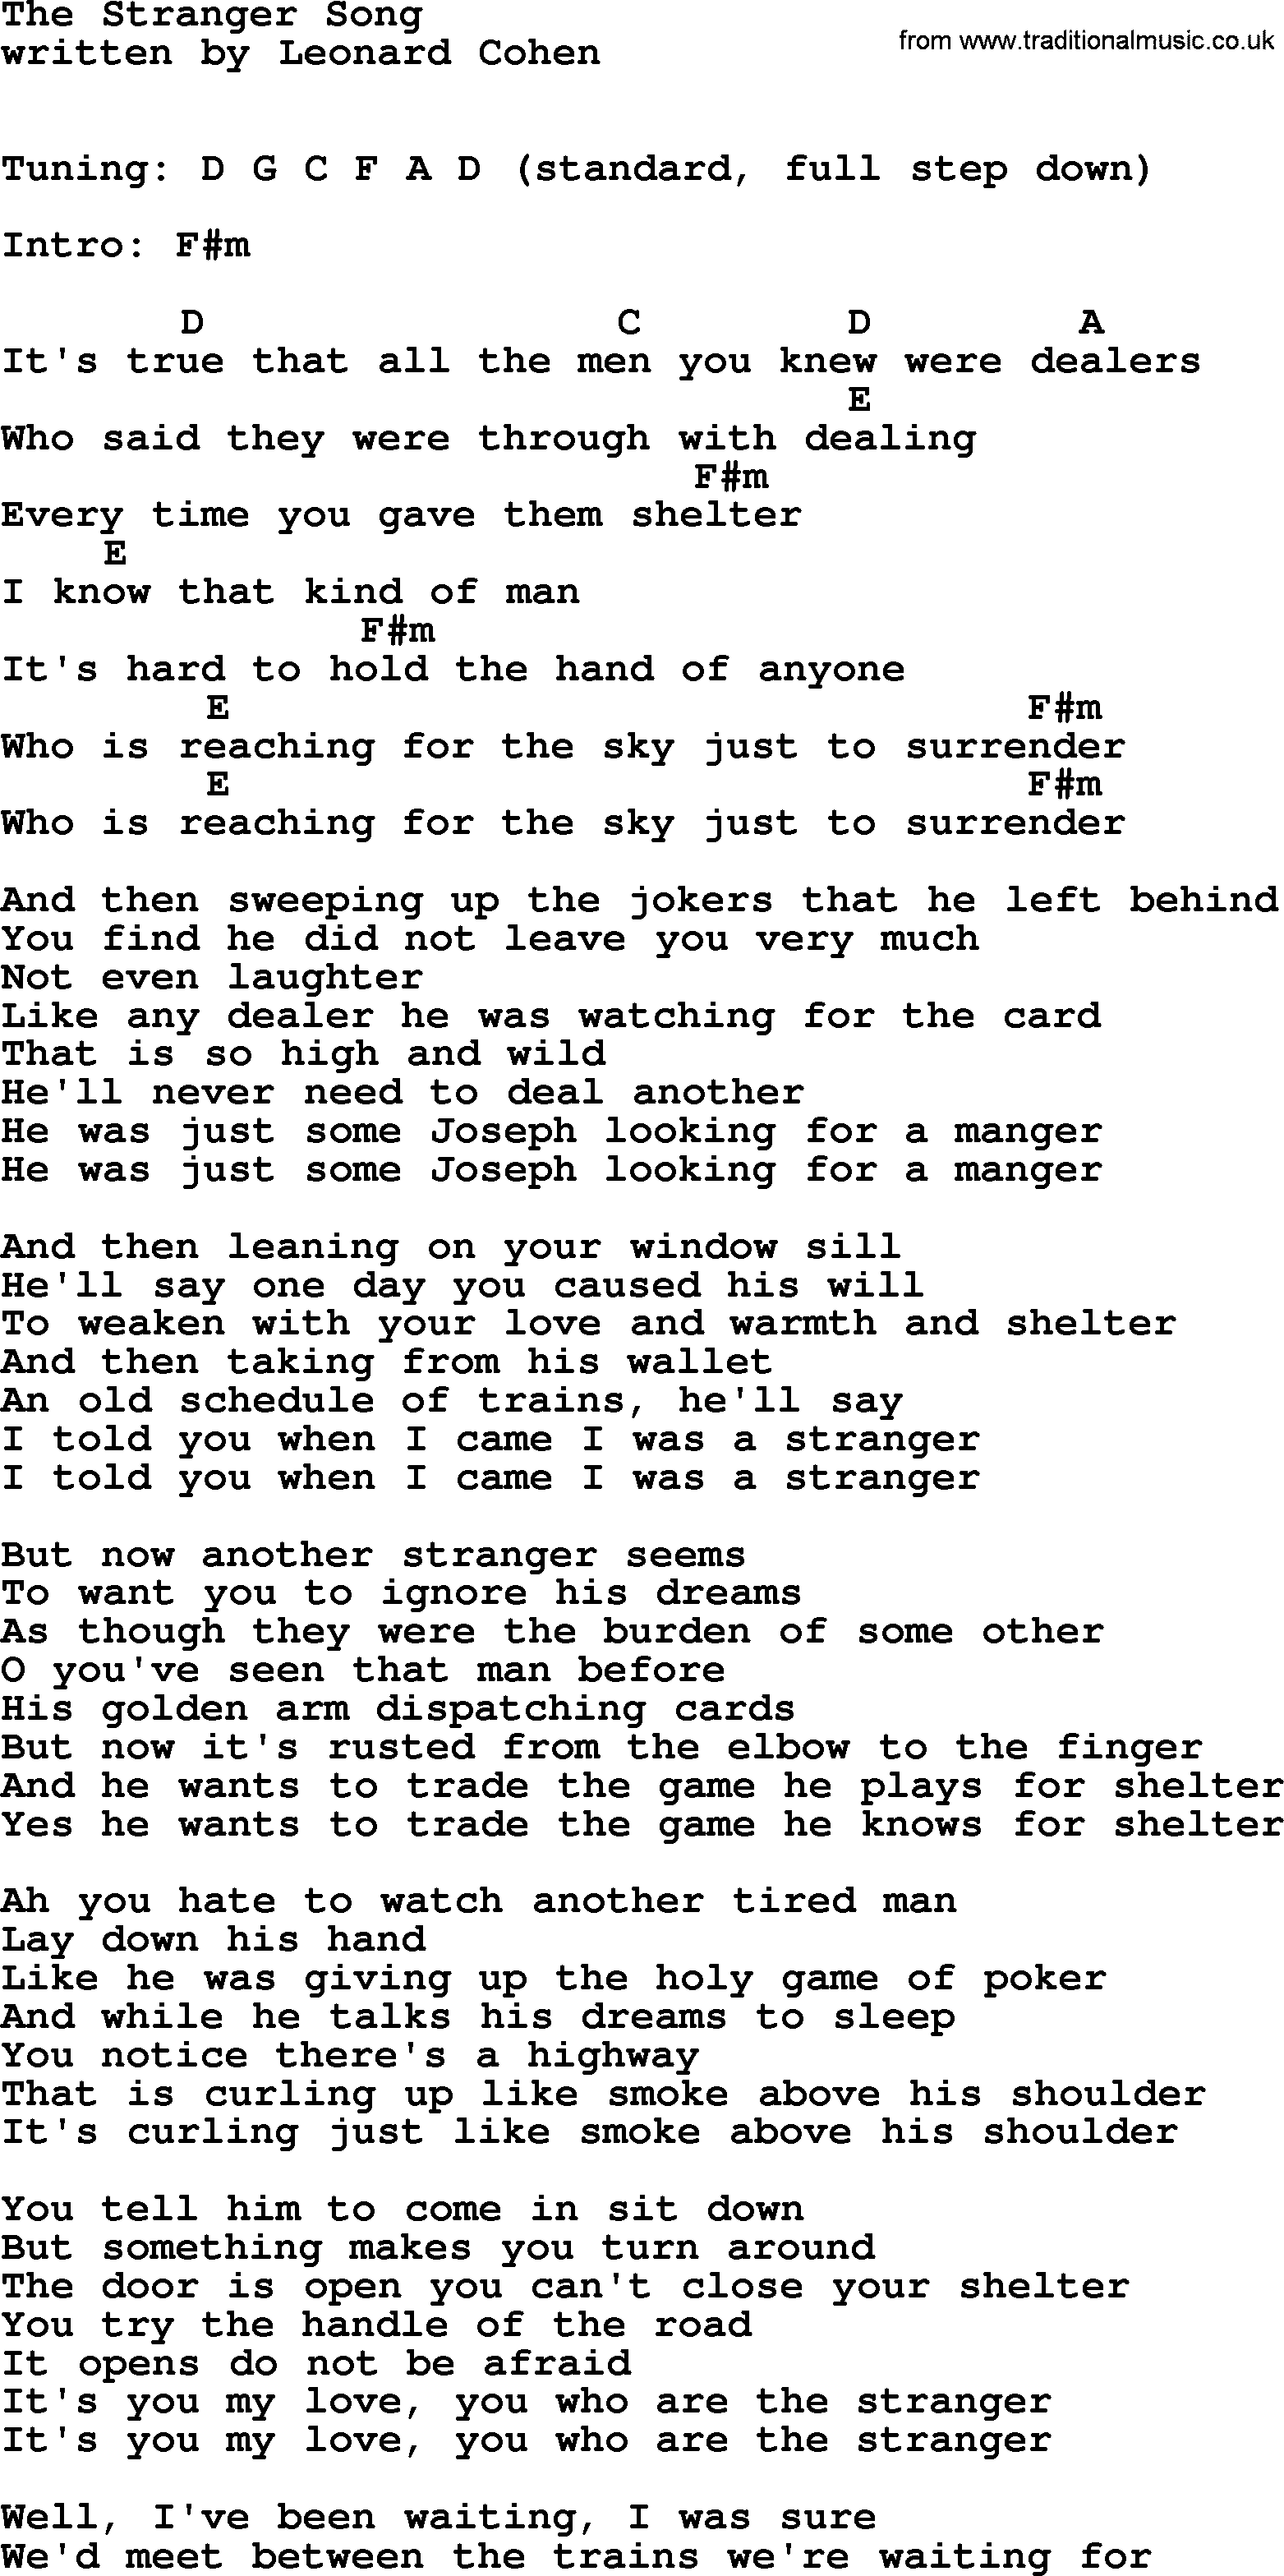 Leonard cohen song the stranger song lyrics and chords leonard cohen song the stranger song lyrics and chords hexwebz Image collections